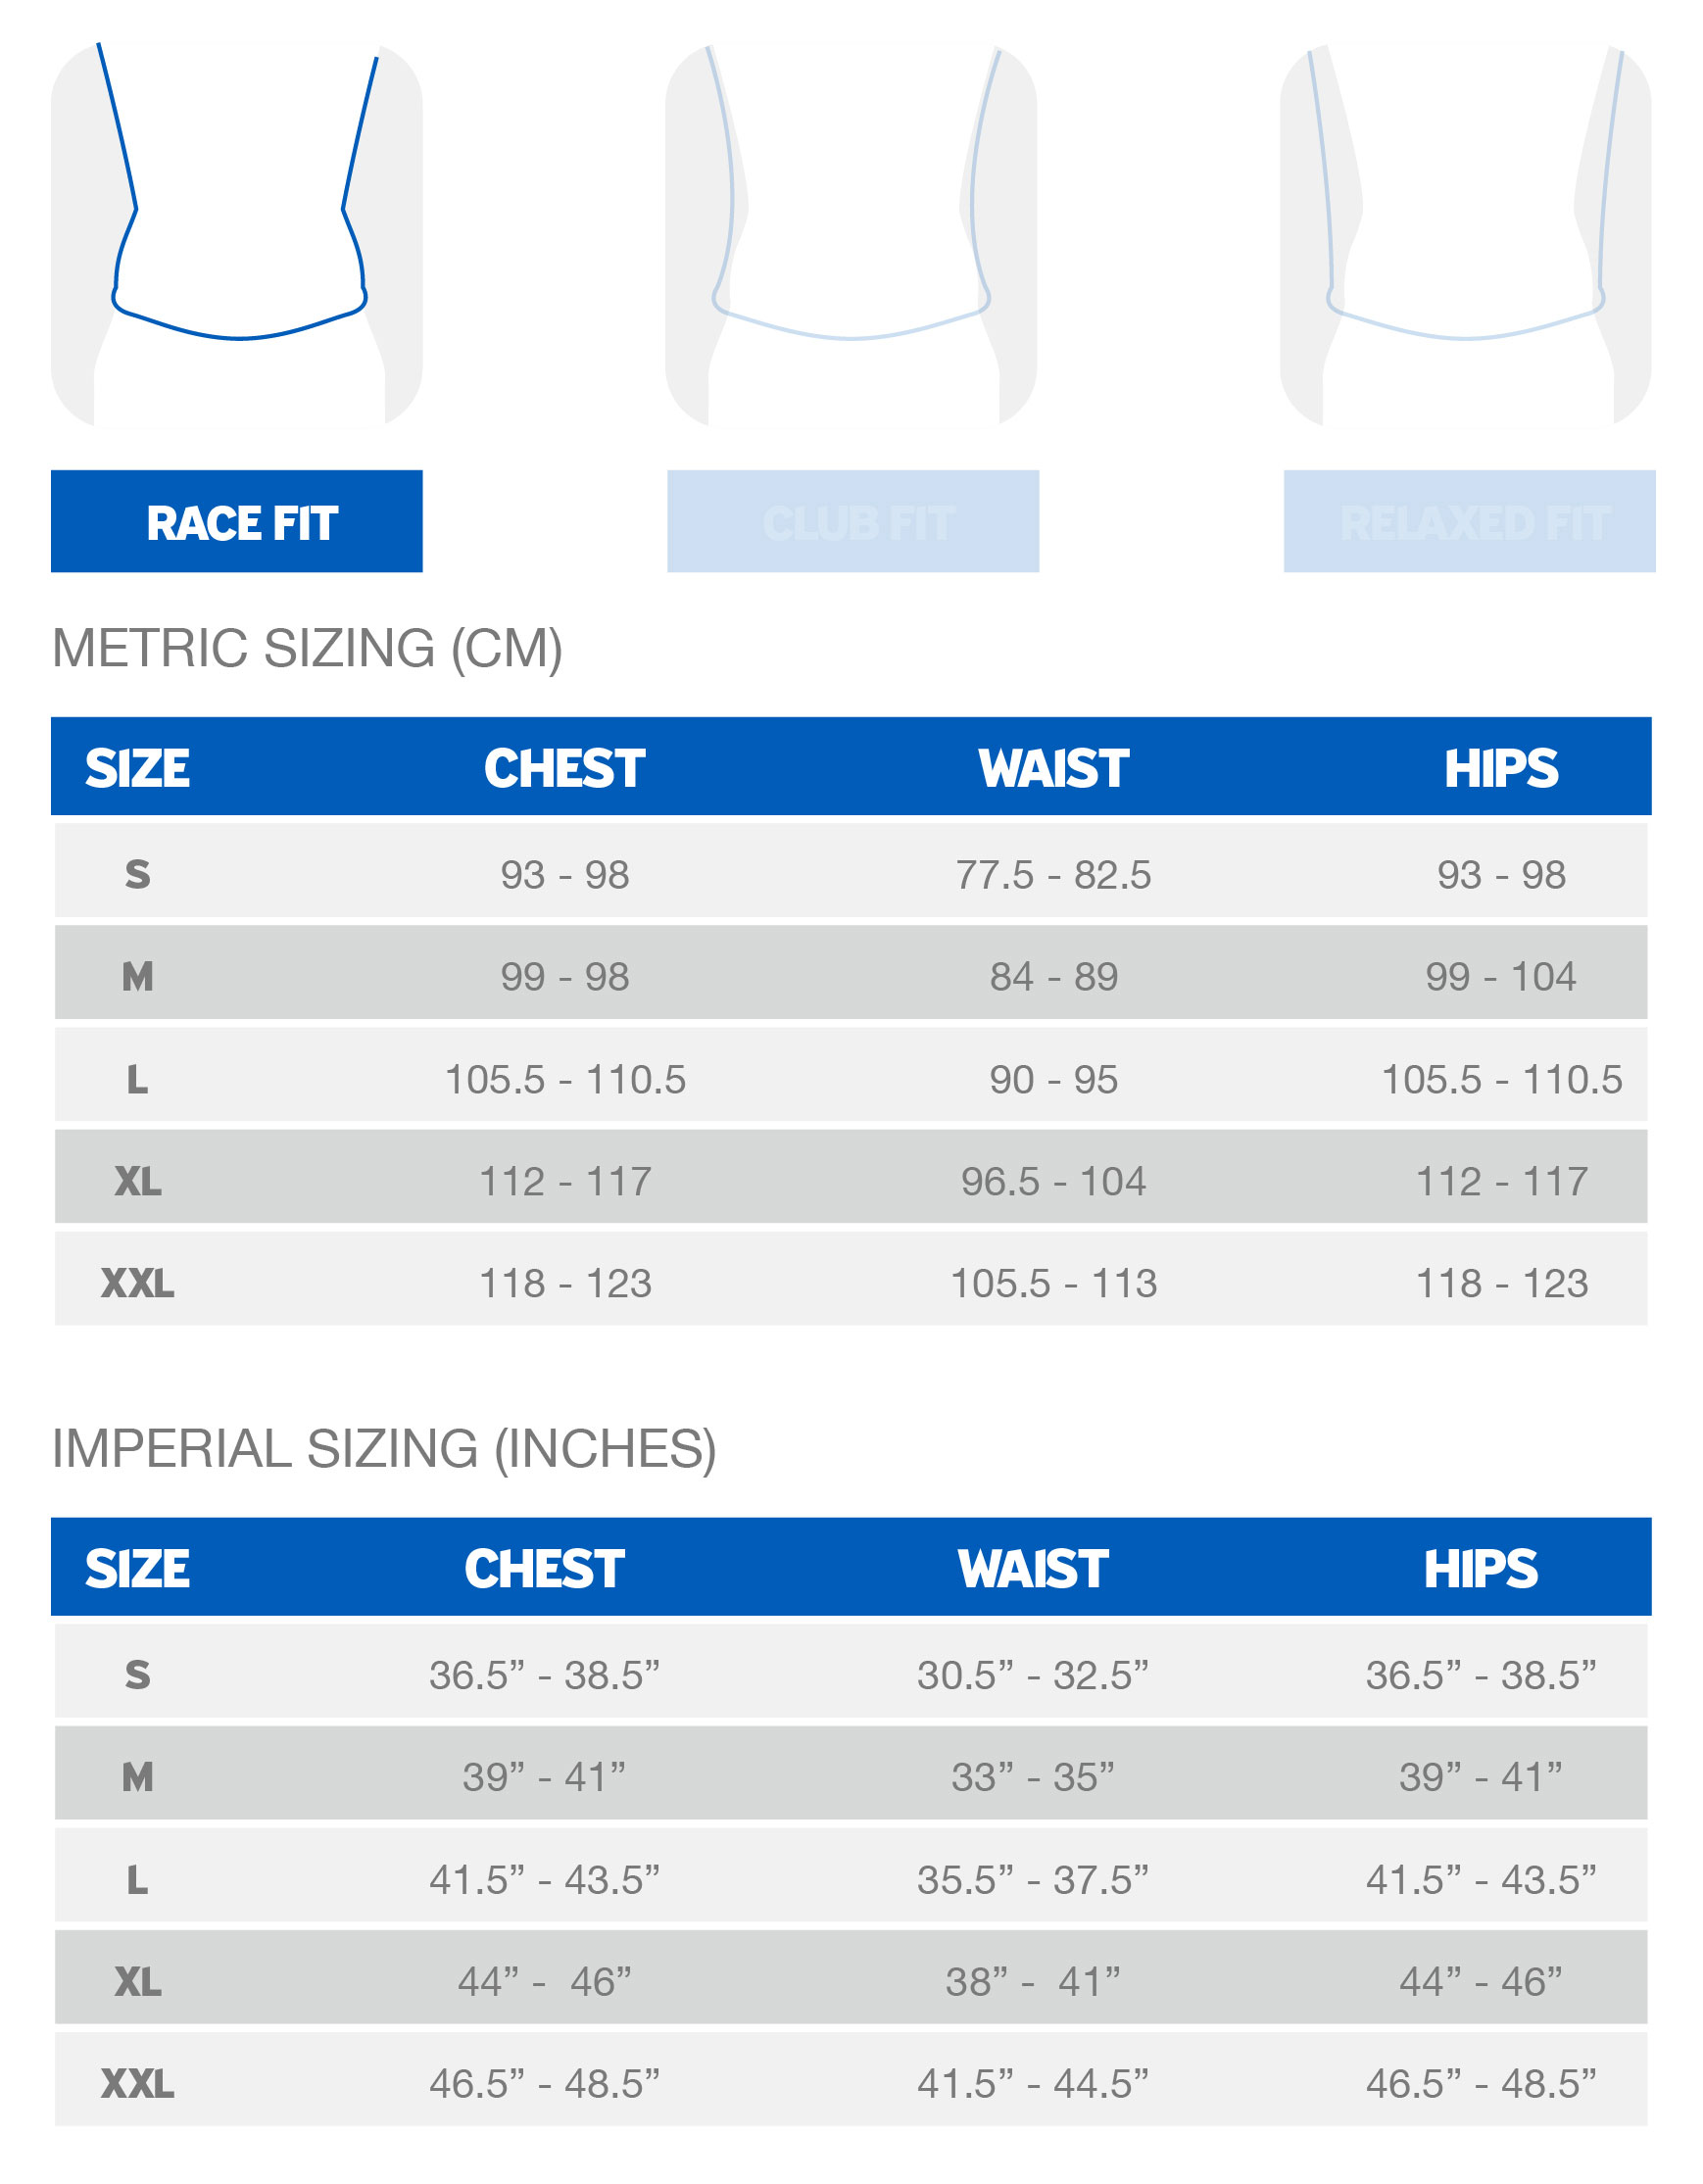 Giant Men's Race Fit sizing chart